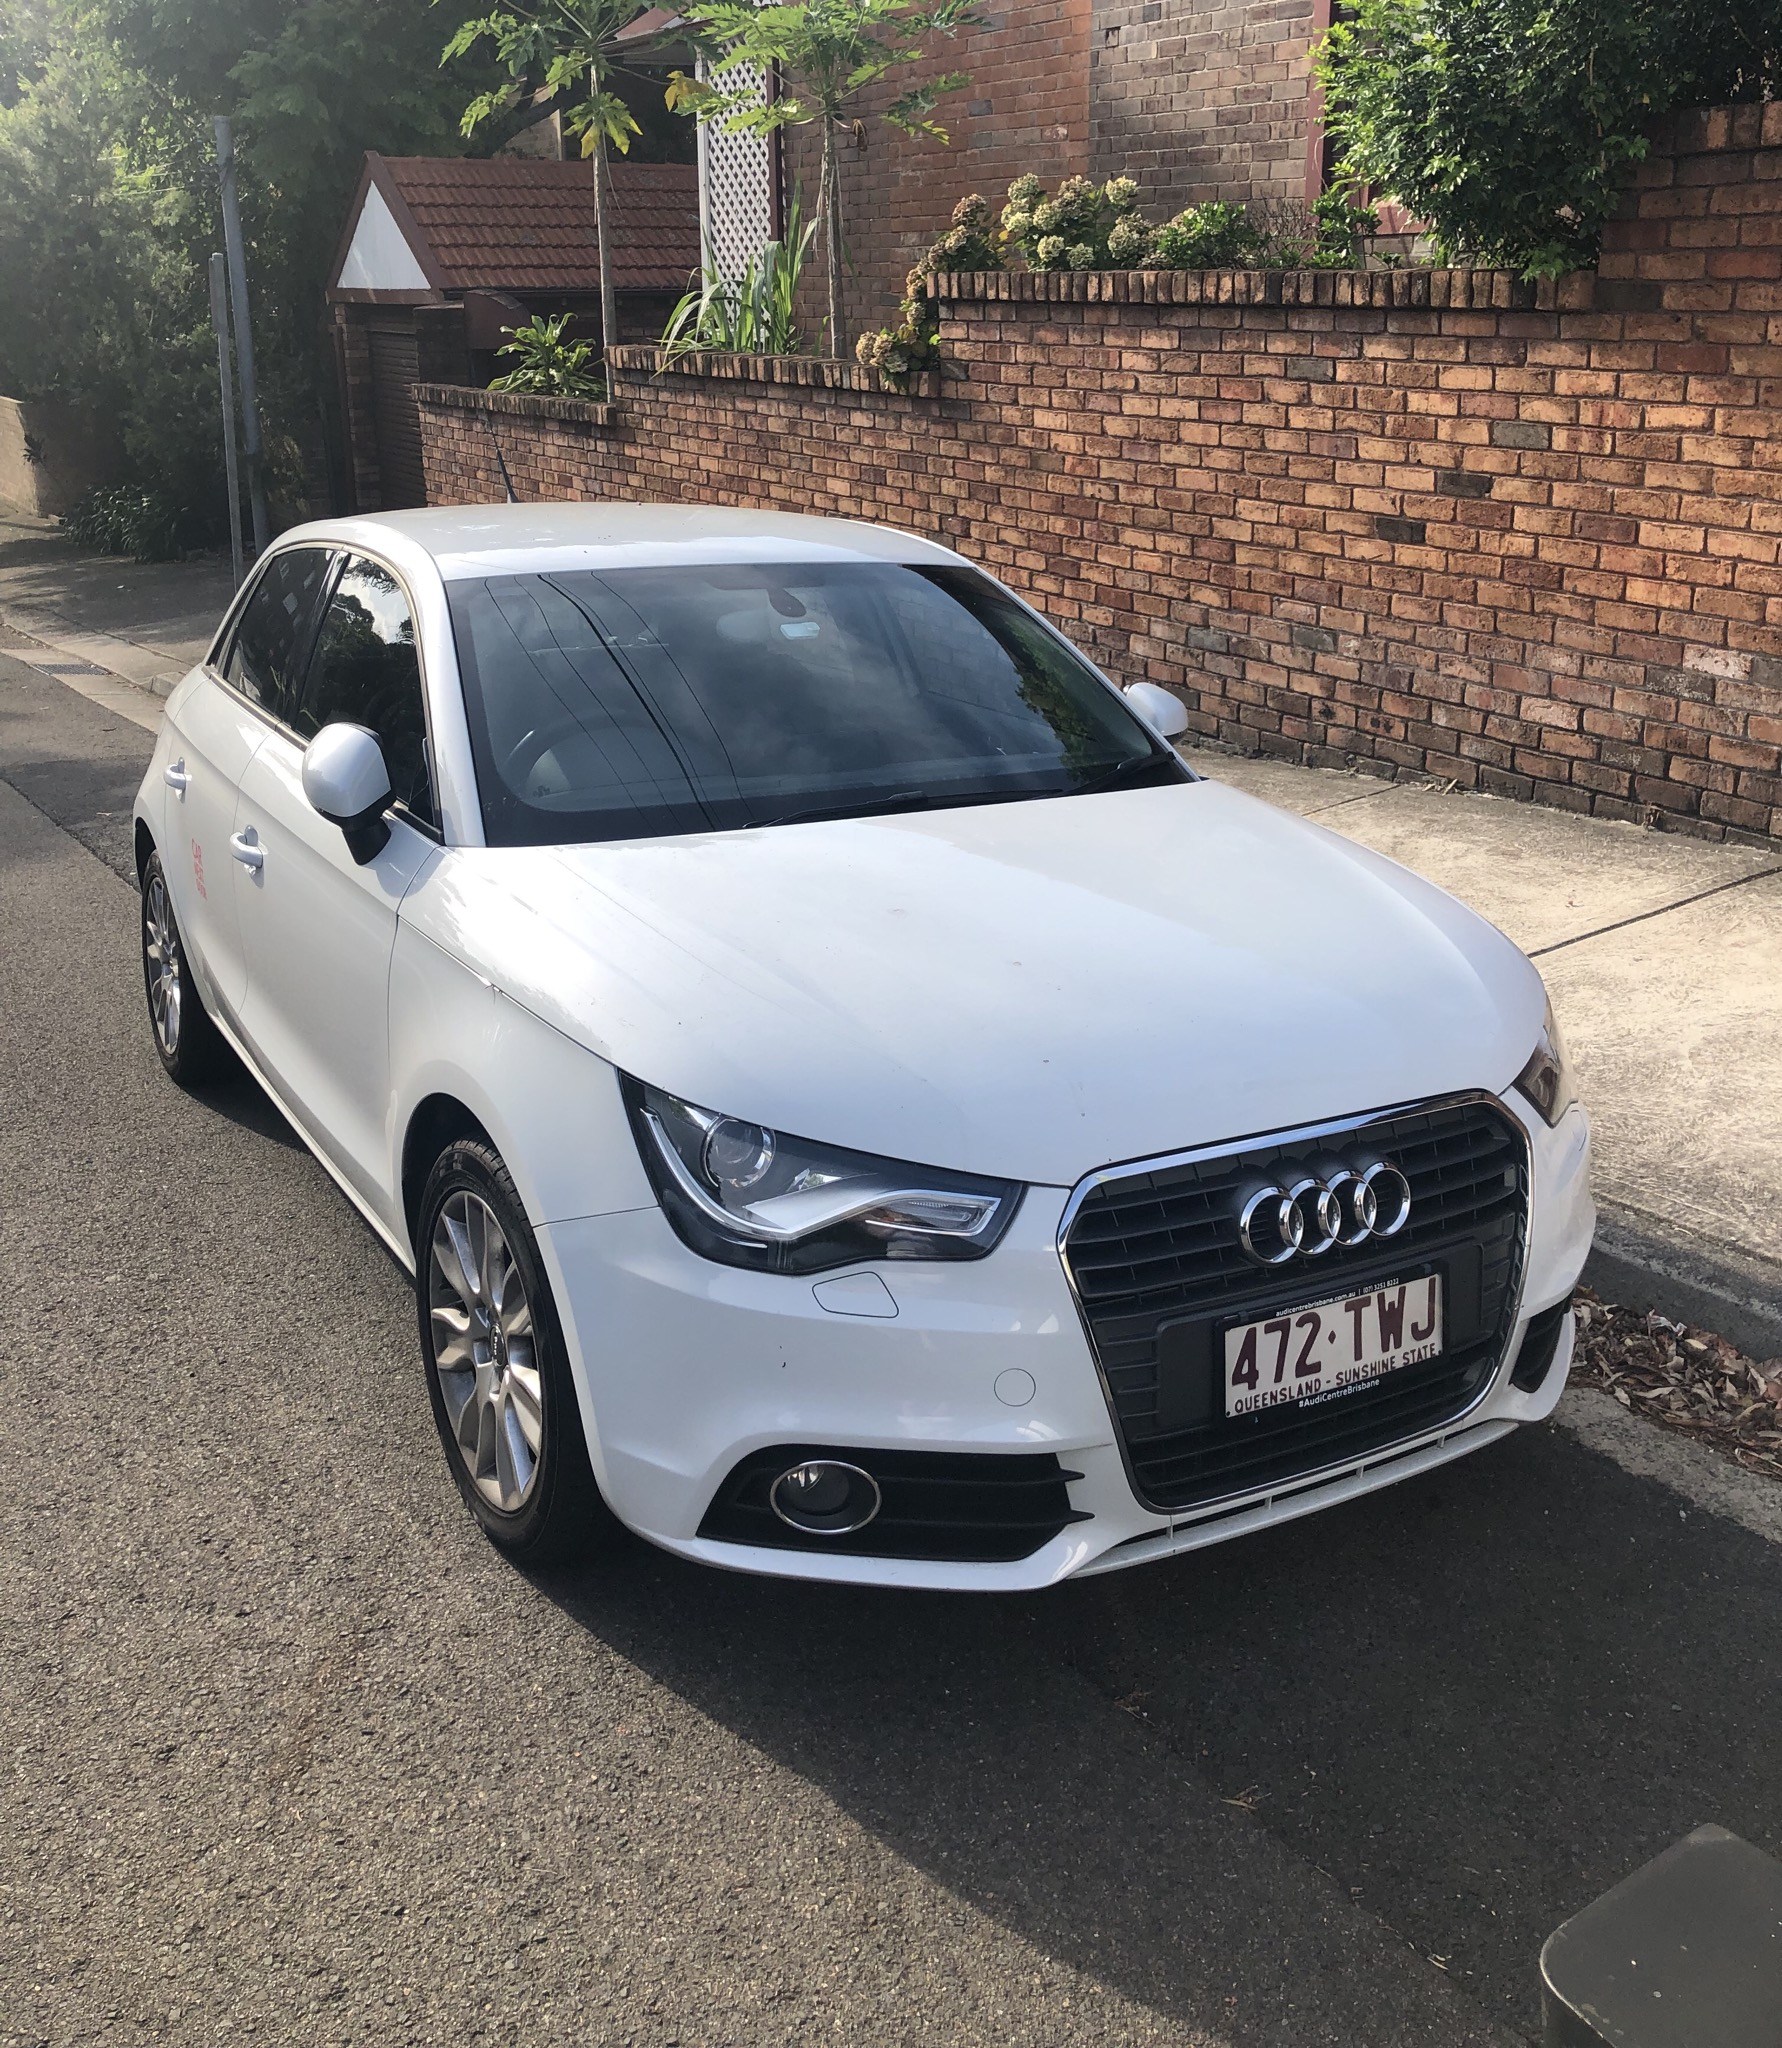 Picture of Nina's 2013 Audi A1